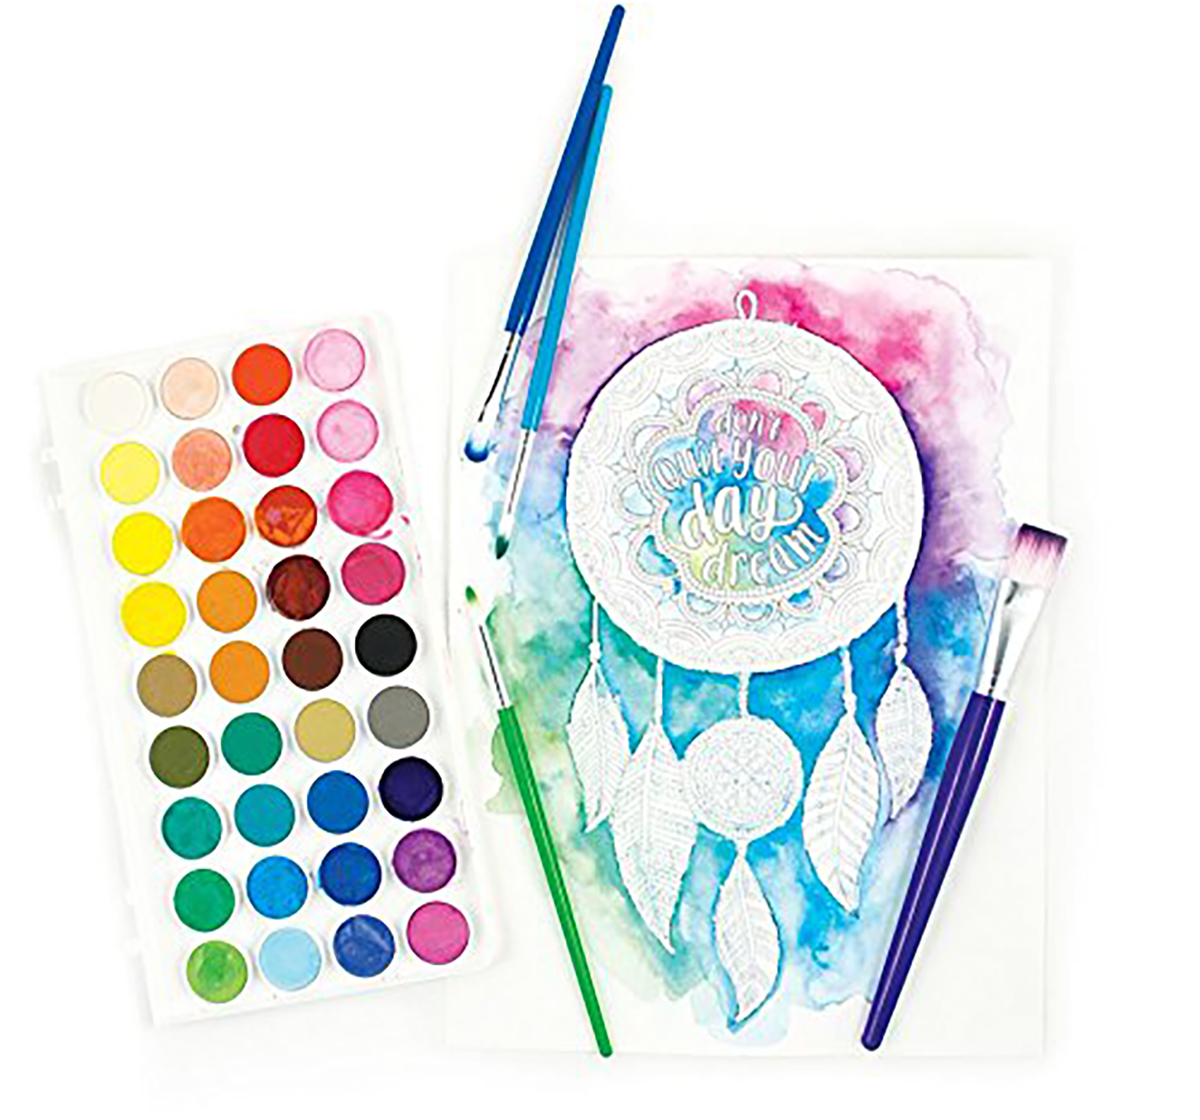 Ooly | Ooly Lil Watercolor Paint Pods School Stationery for Kids age 3Y+